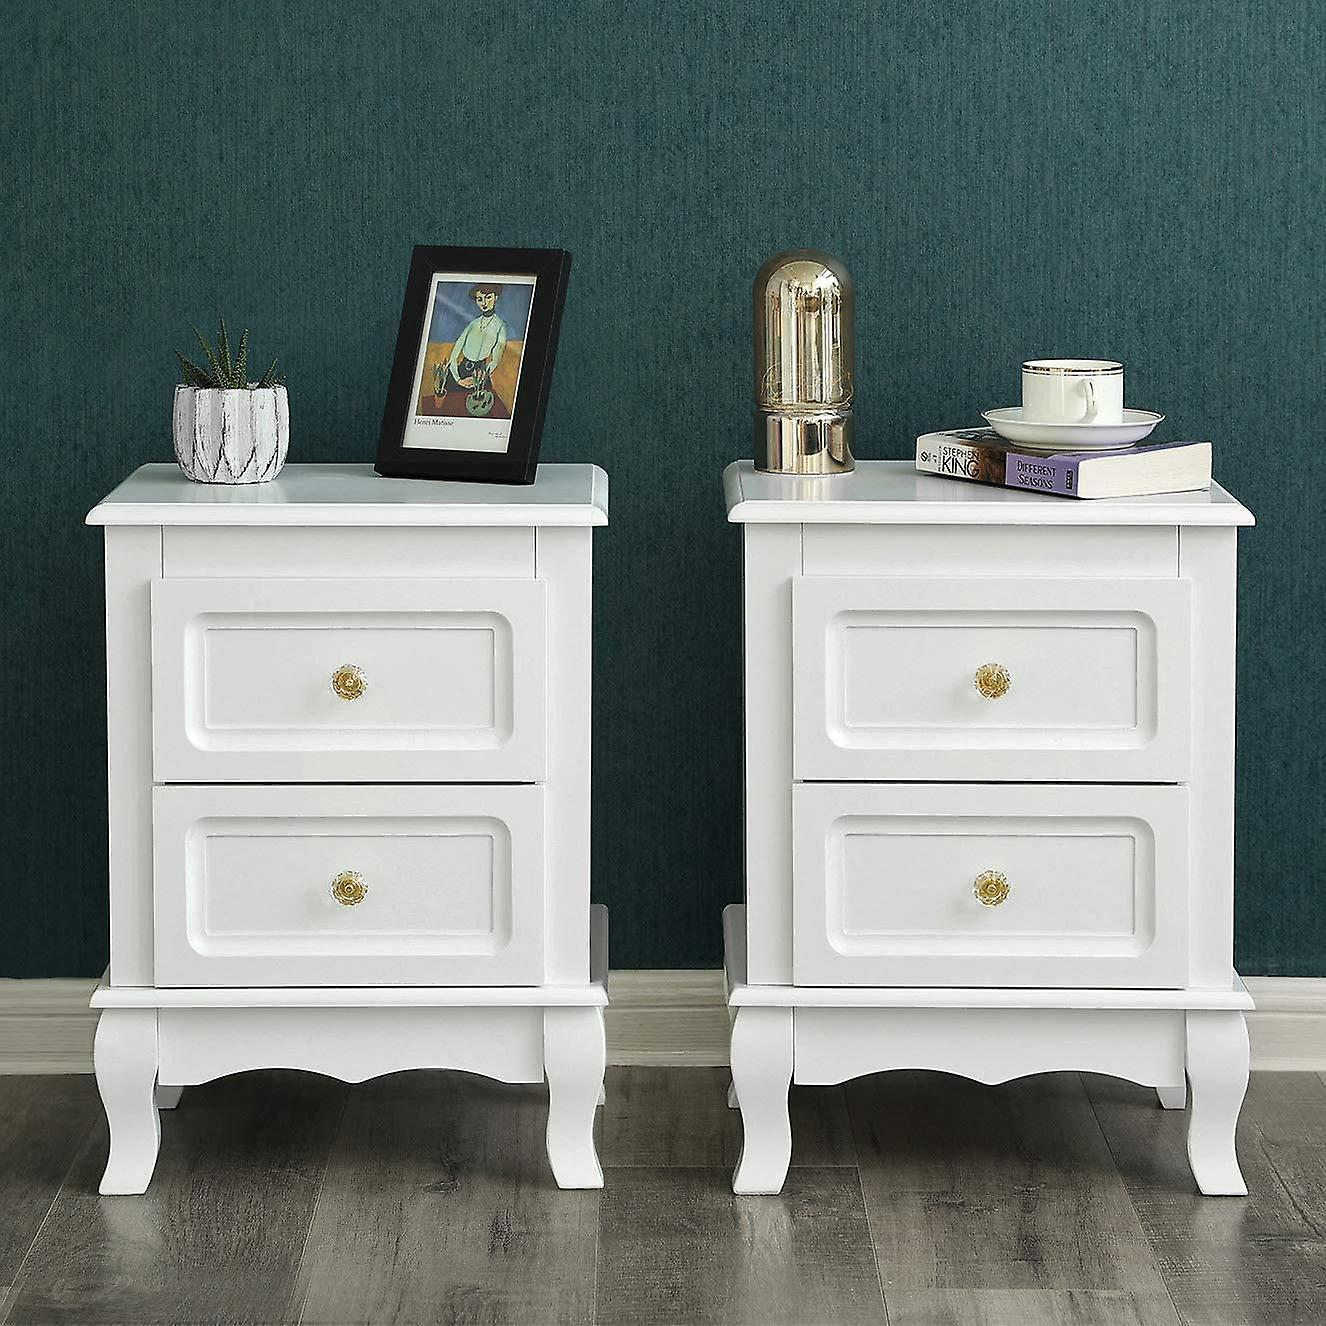 Set of 2 bedside tables with 2 drawers